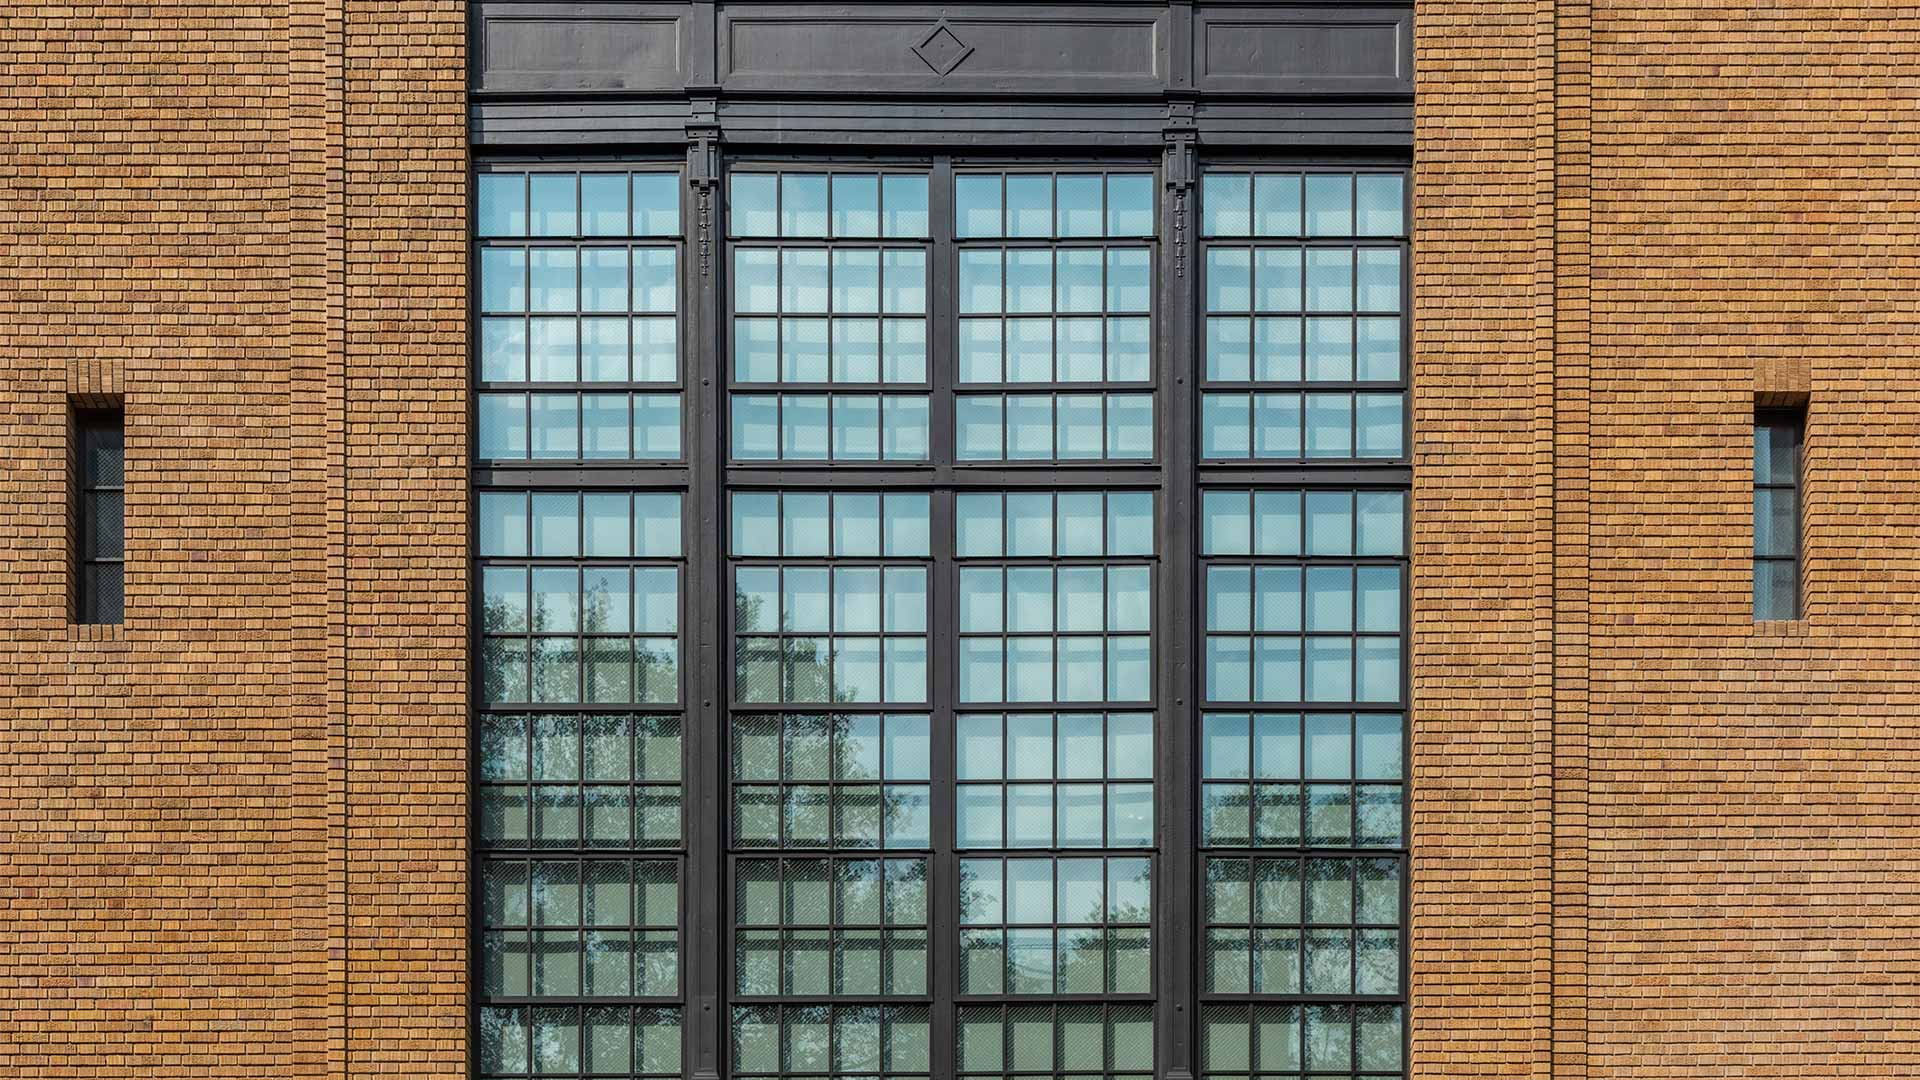 A building with steel glass windows